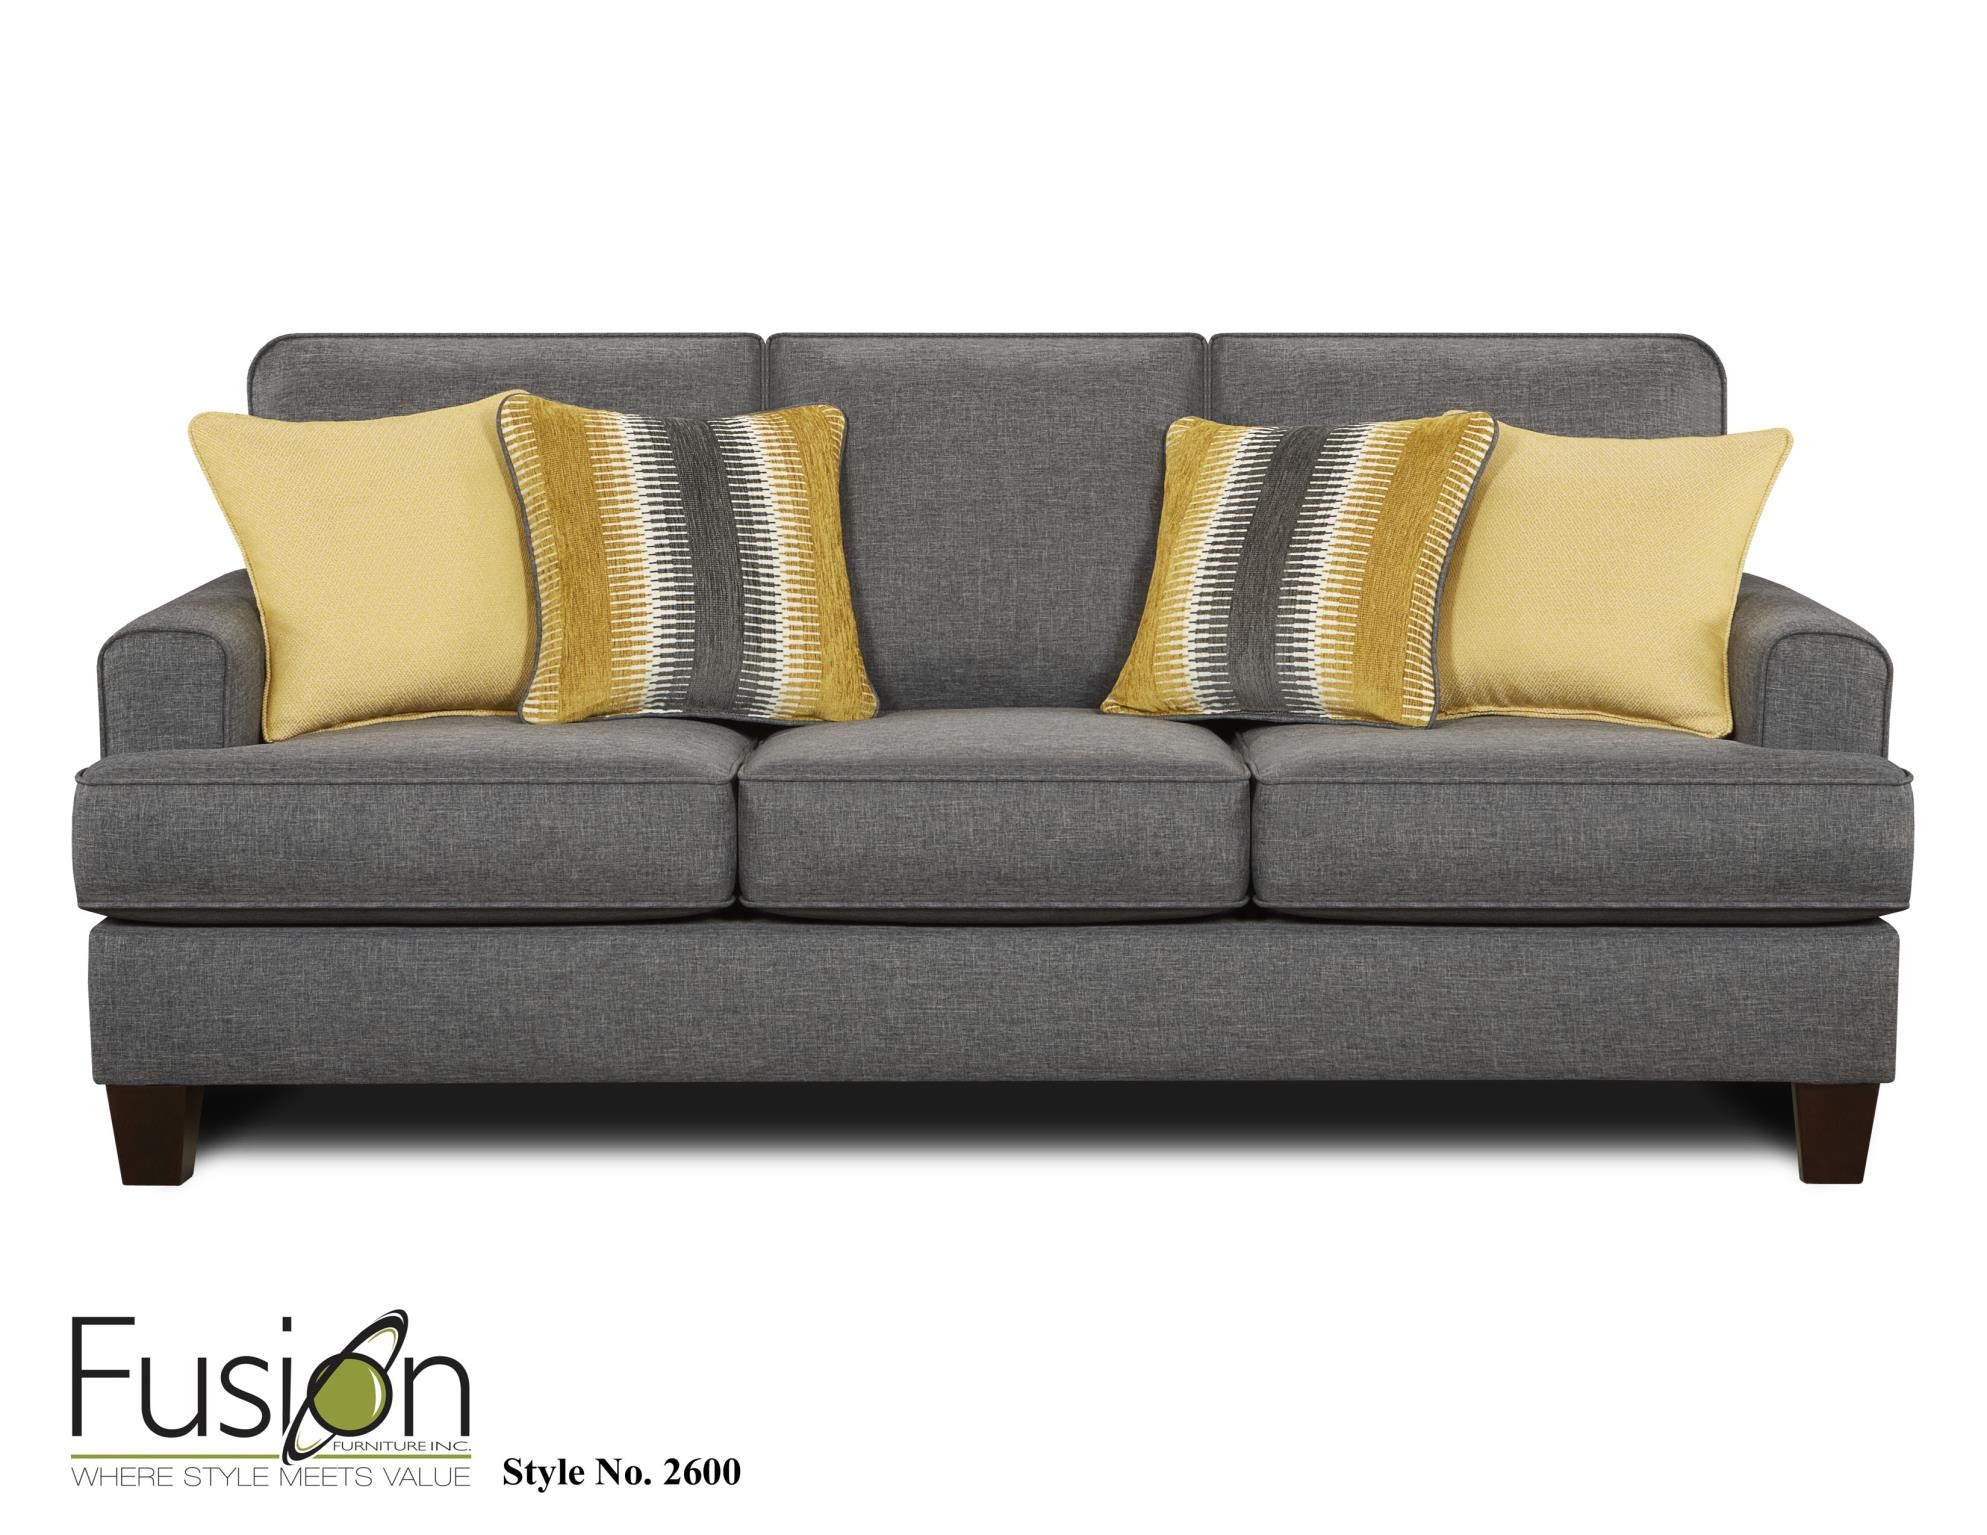 Fusion Living Room Sofa 2600Maxwell Gray At B.F. Myers Furniture